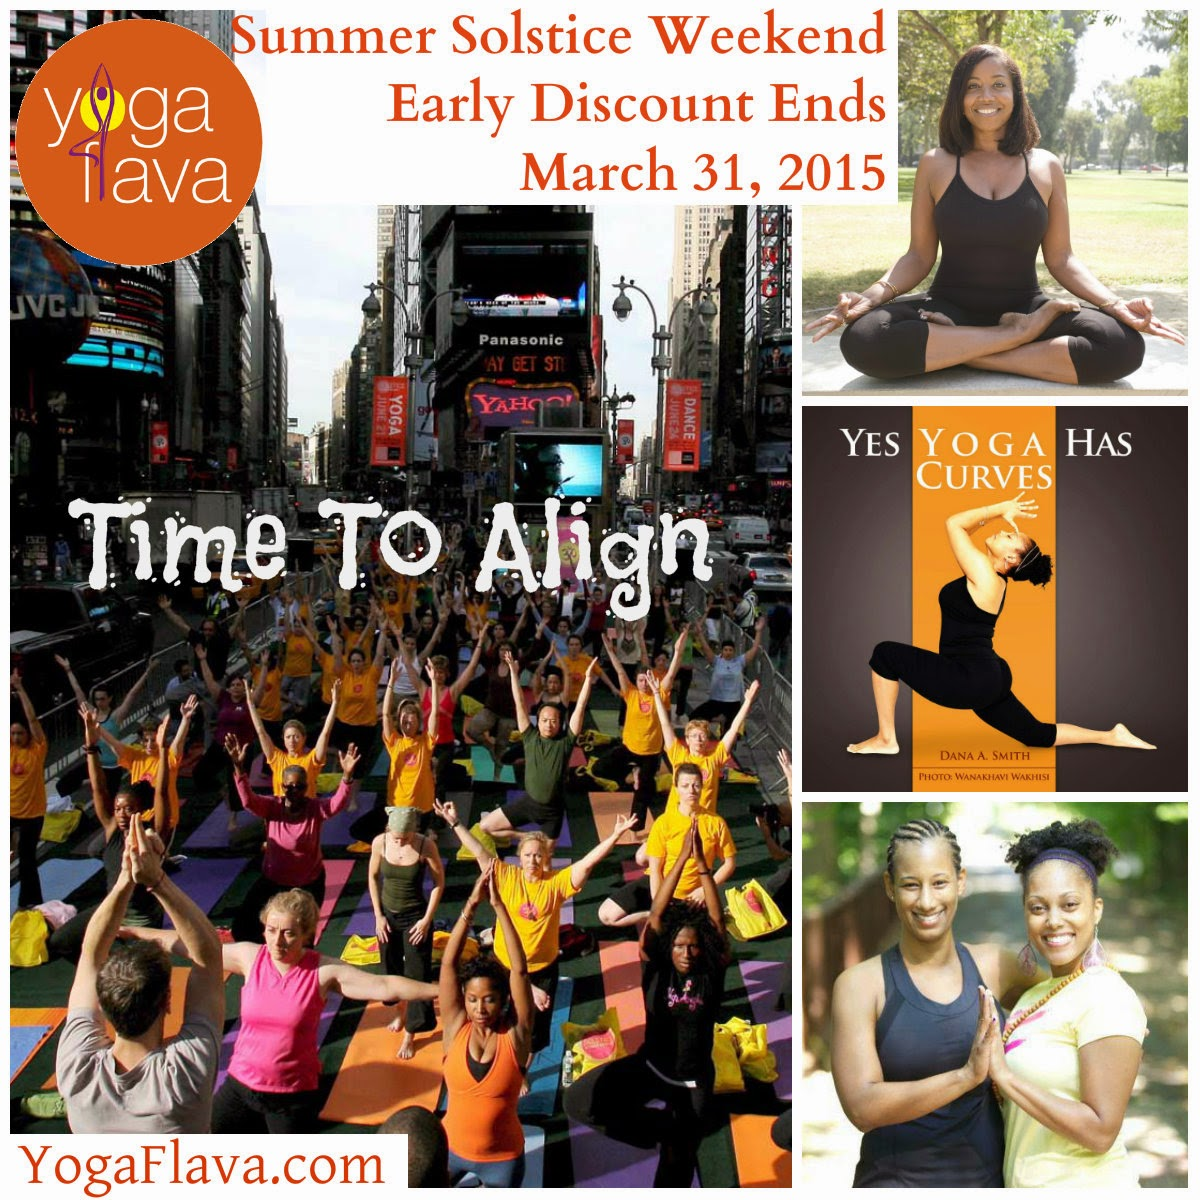 JOIN US - SUMMER SOLSTICE WEEKEND NYC